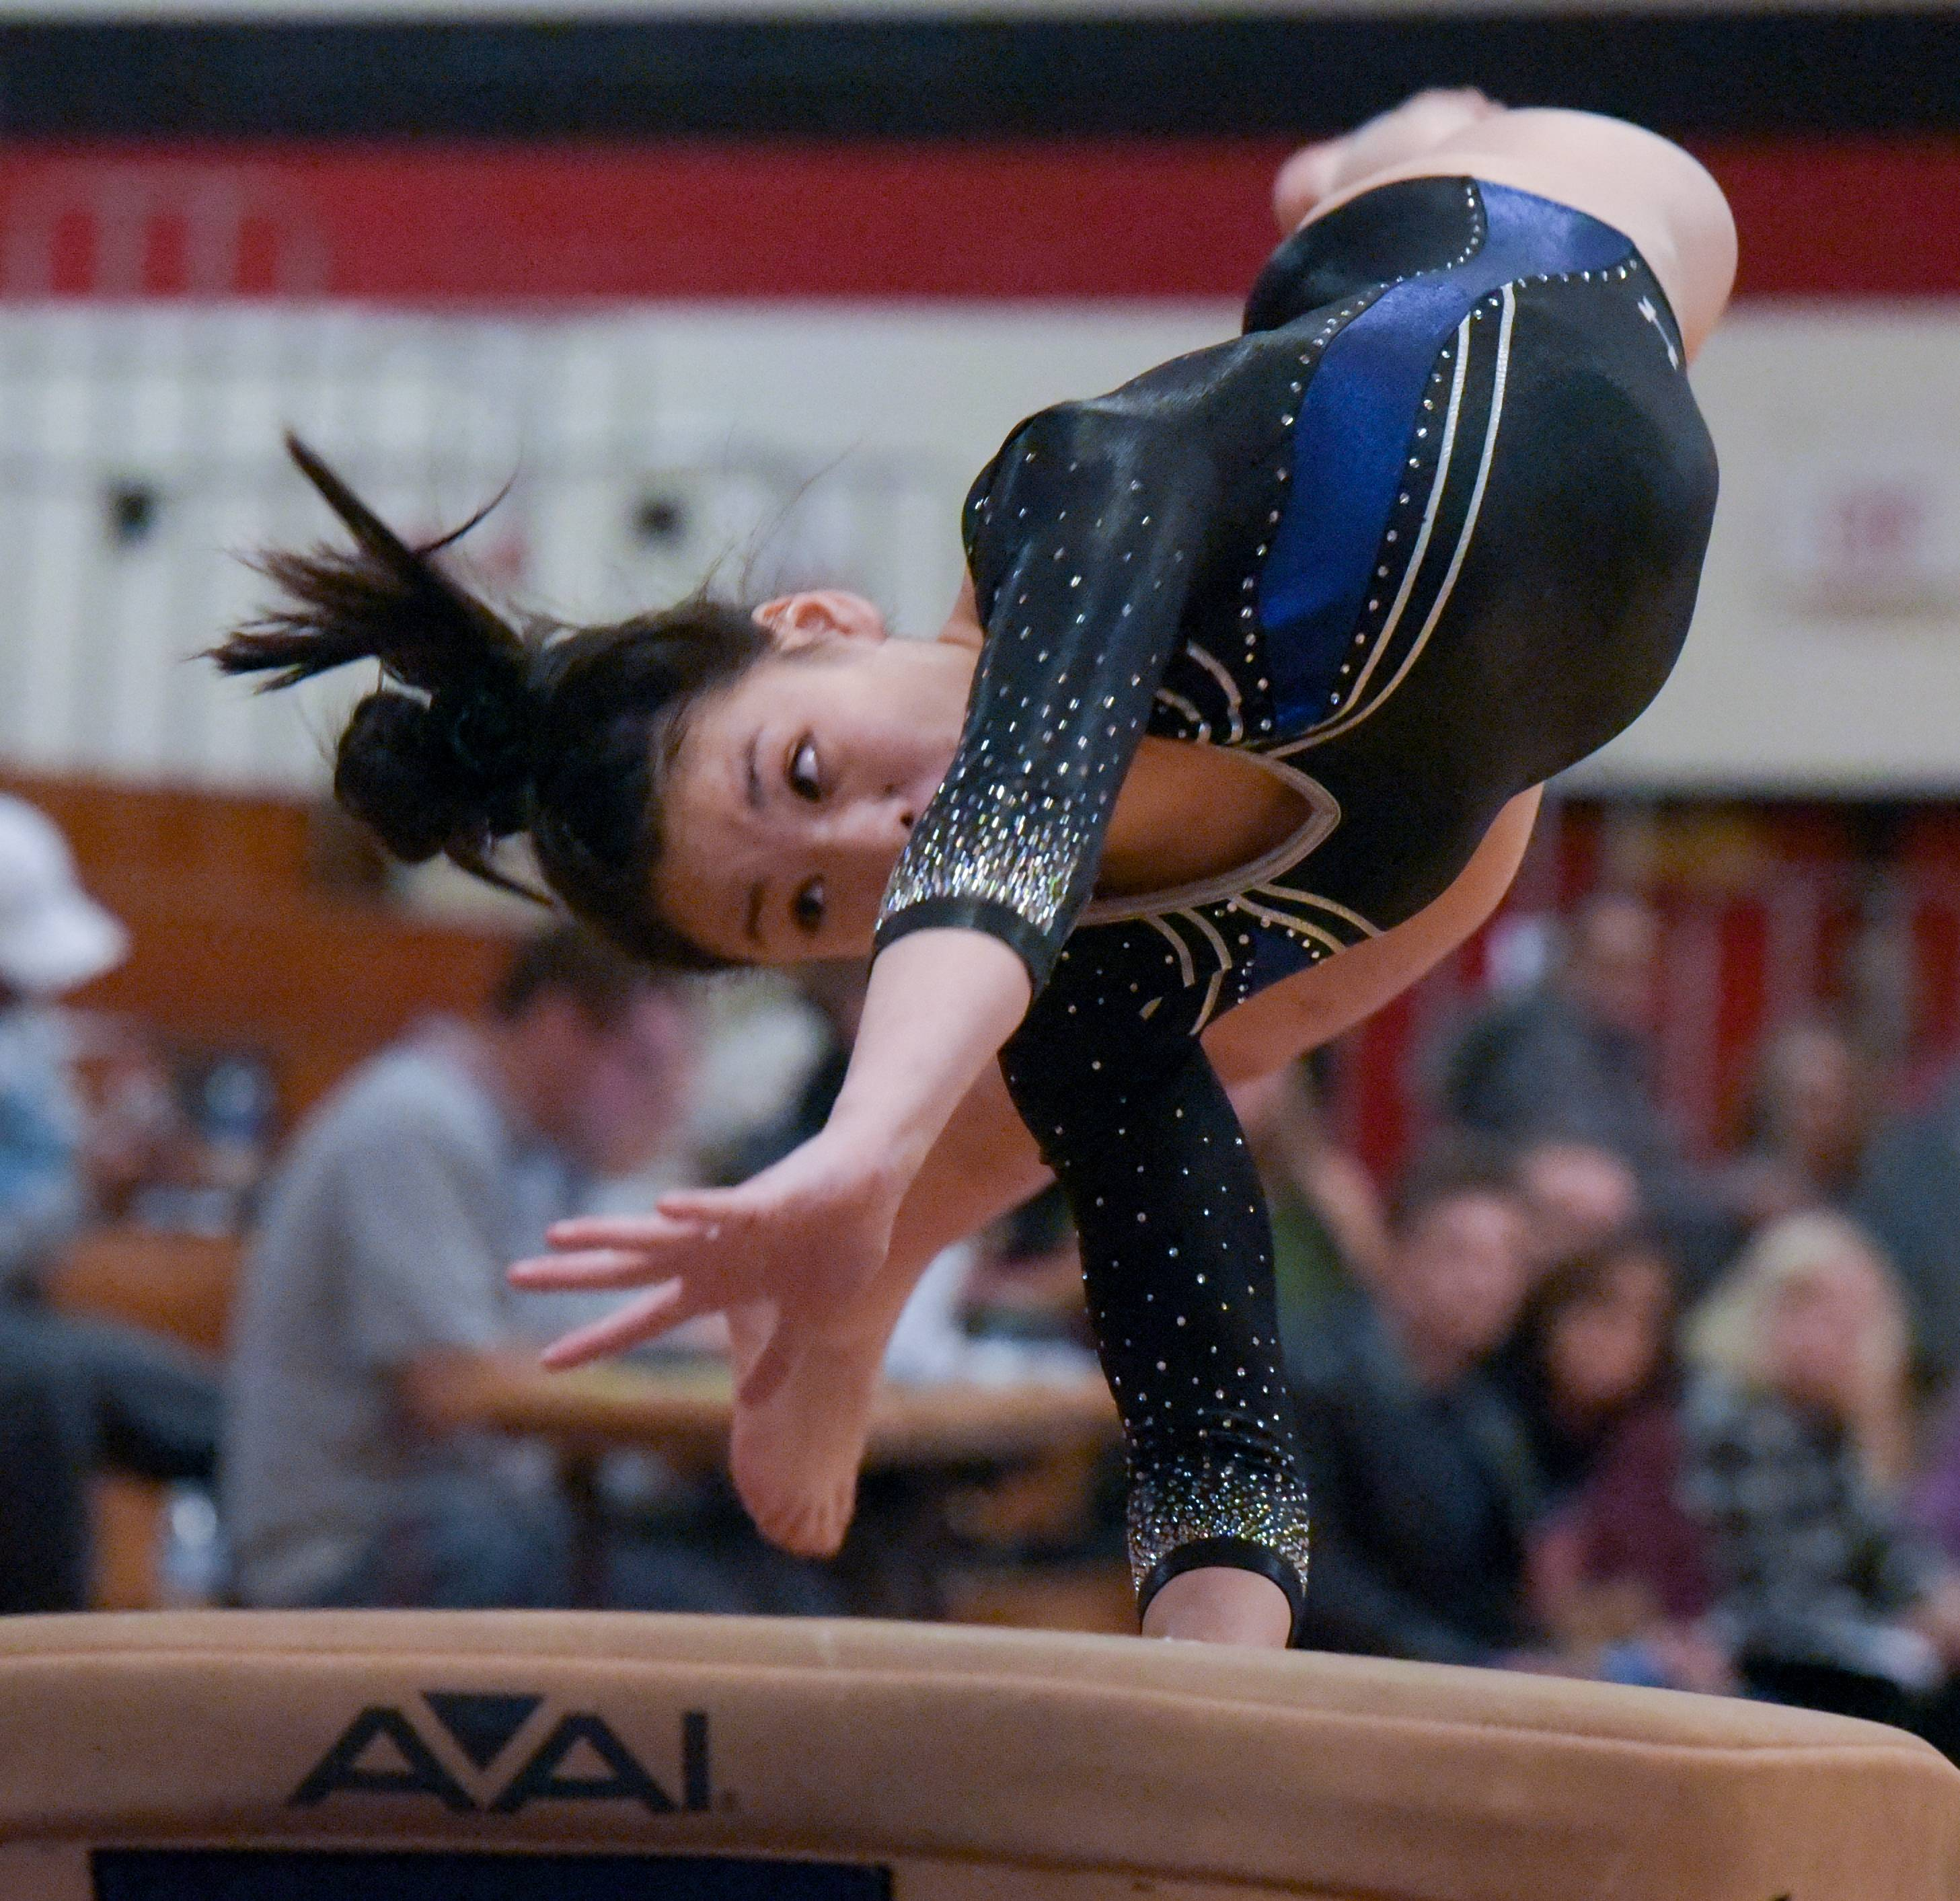 St. Charles' Emma Gracew Redmond-Mattucci competes on the vault  during the Glenbard East girls gymnastics regional on Monday, Jan. 29, 2018.